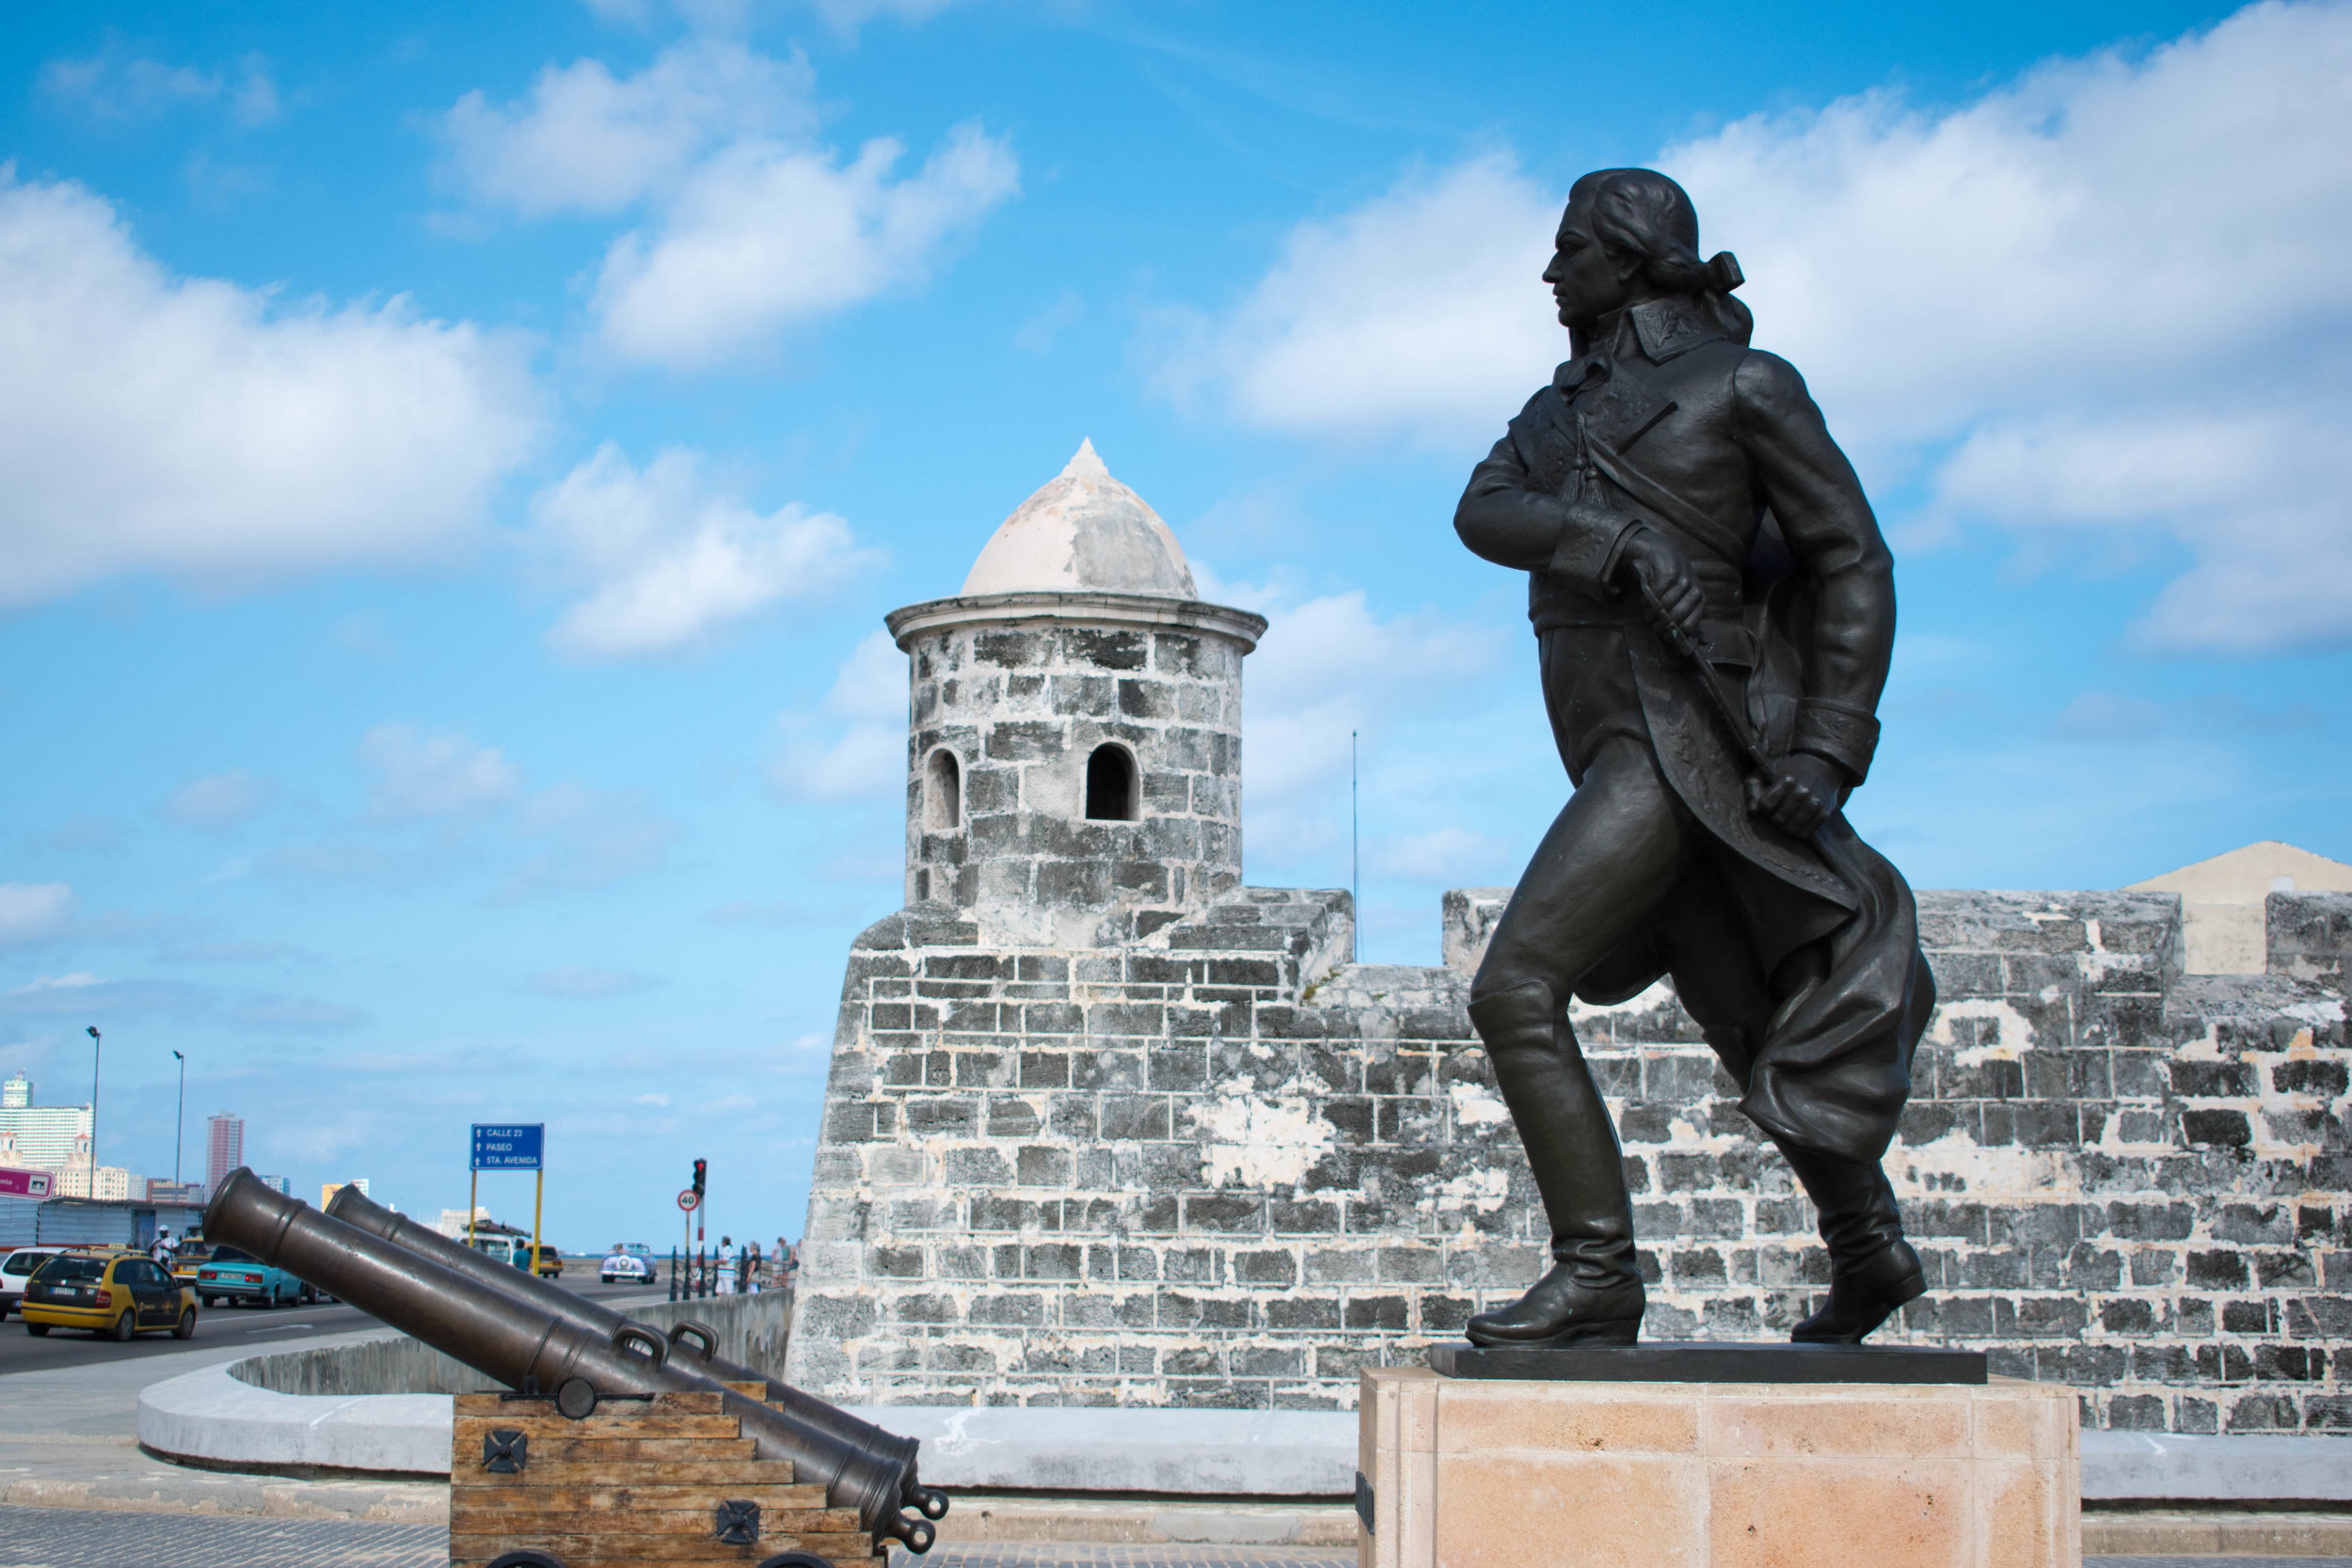 A Fort Overlooking The City and Sea in Havana, Cuba